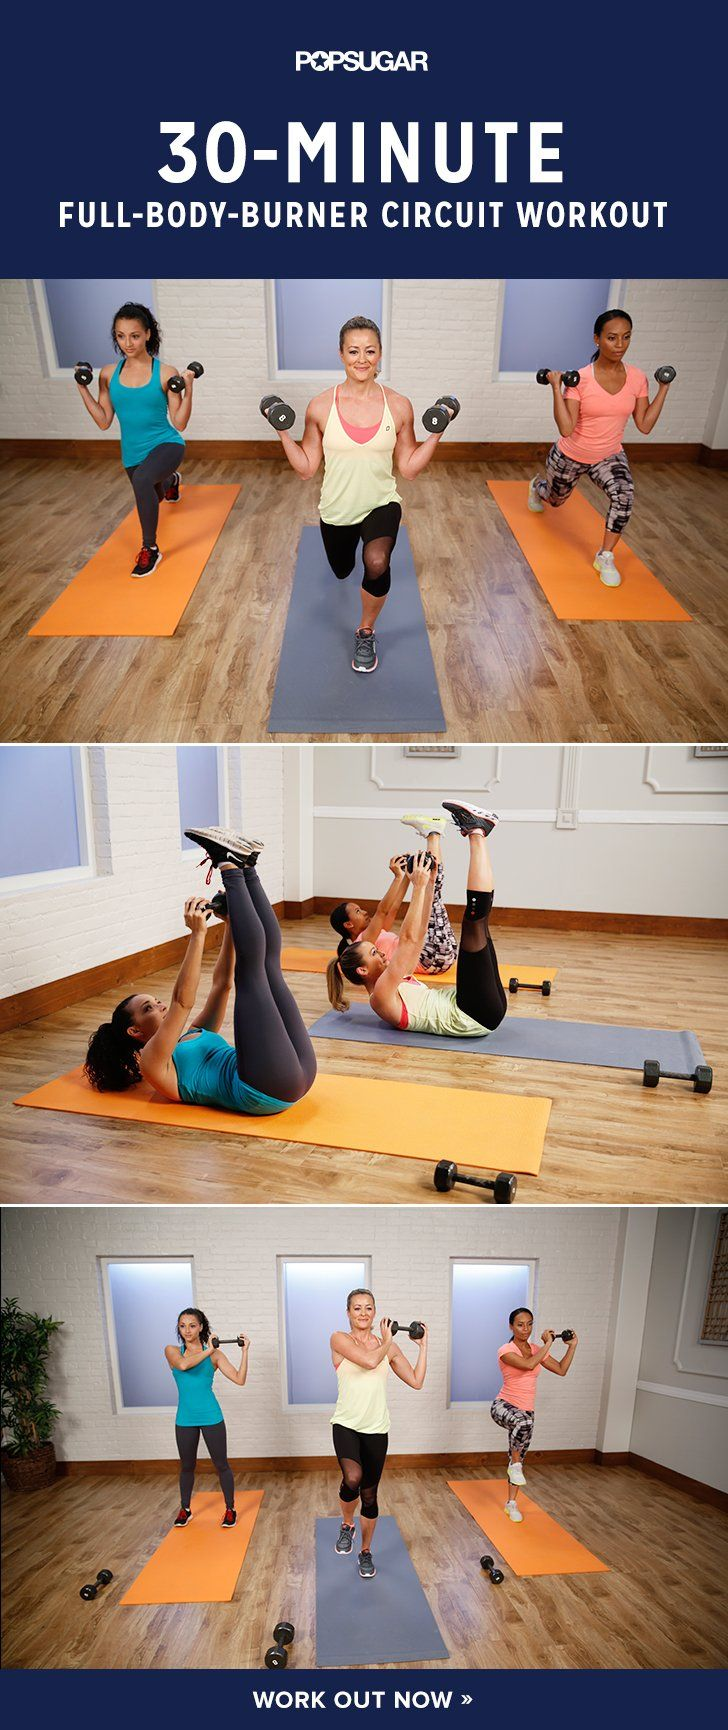 The Workout You Need to Tone Up: Full-Body Burner